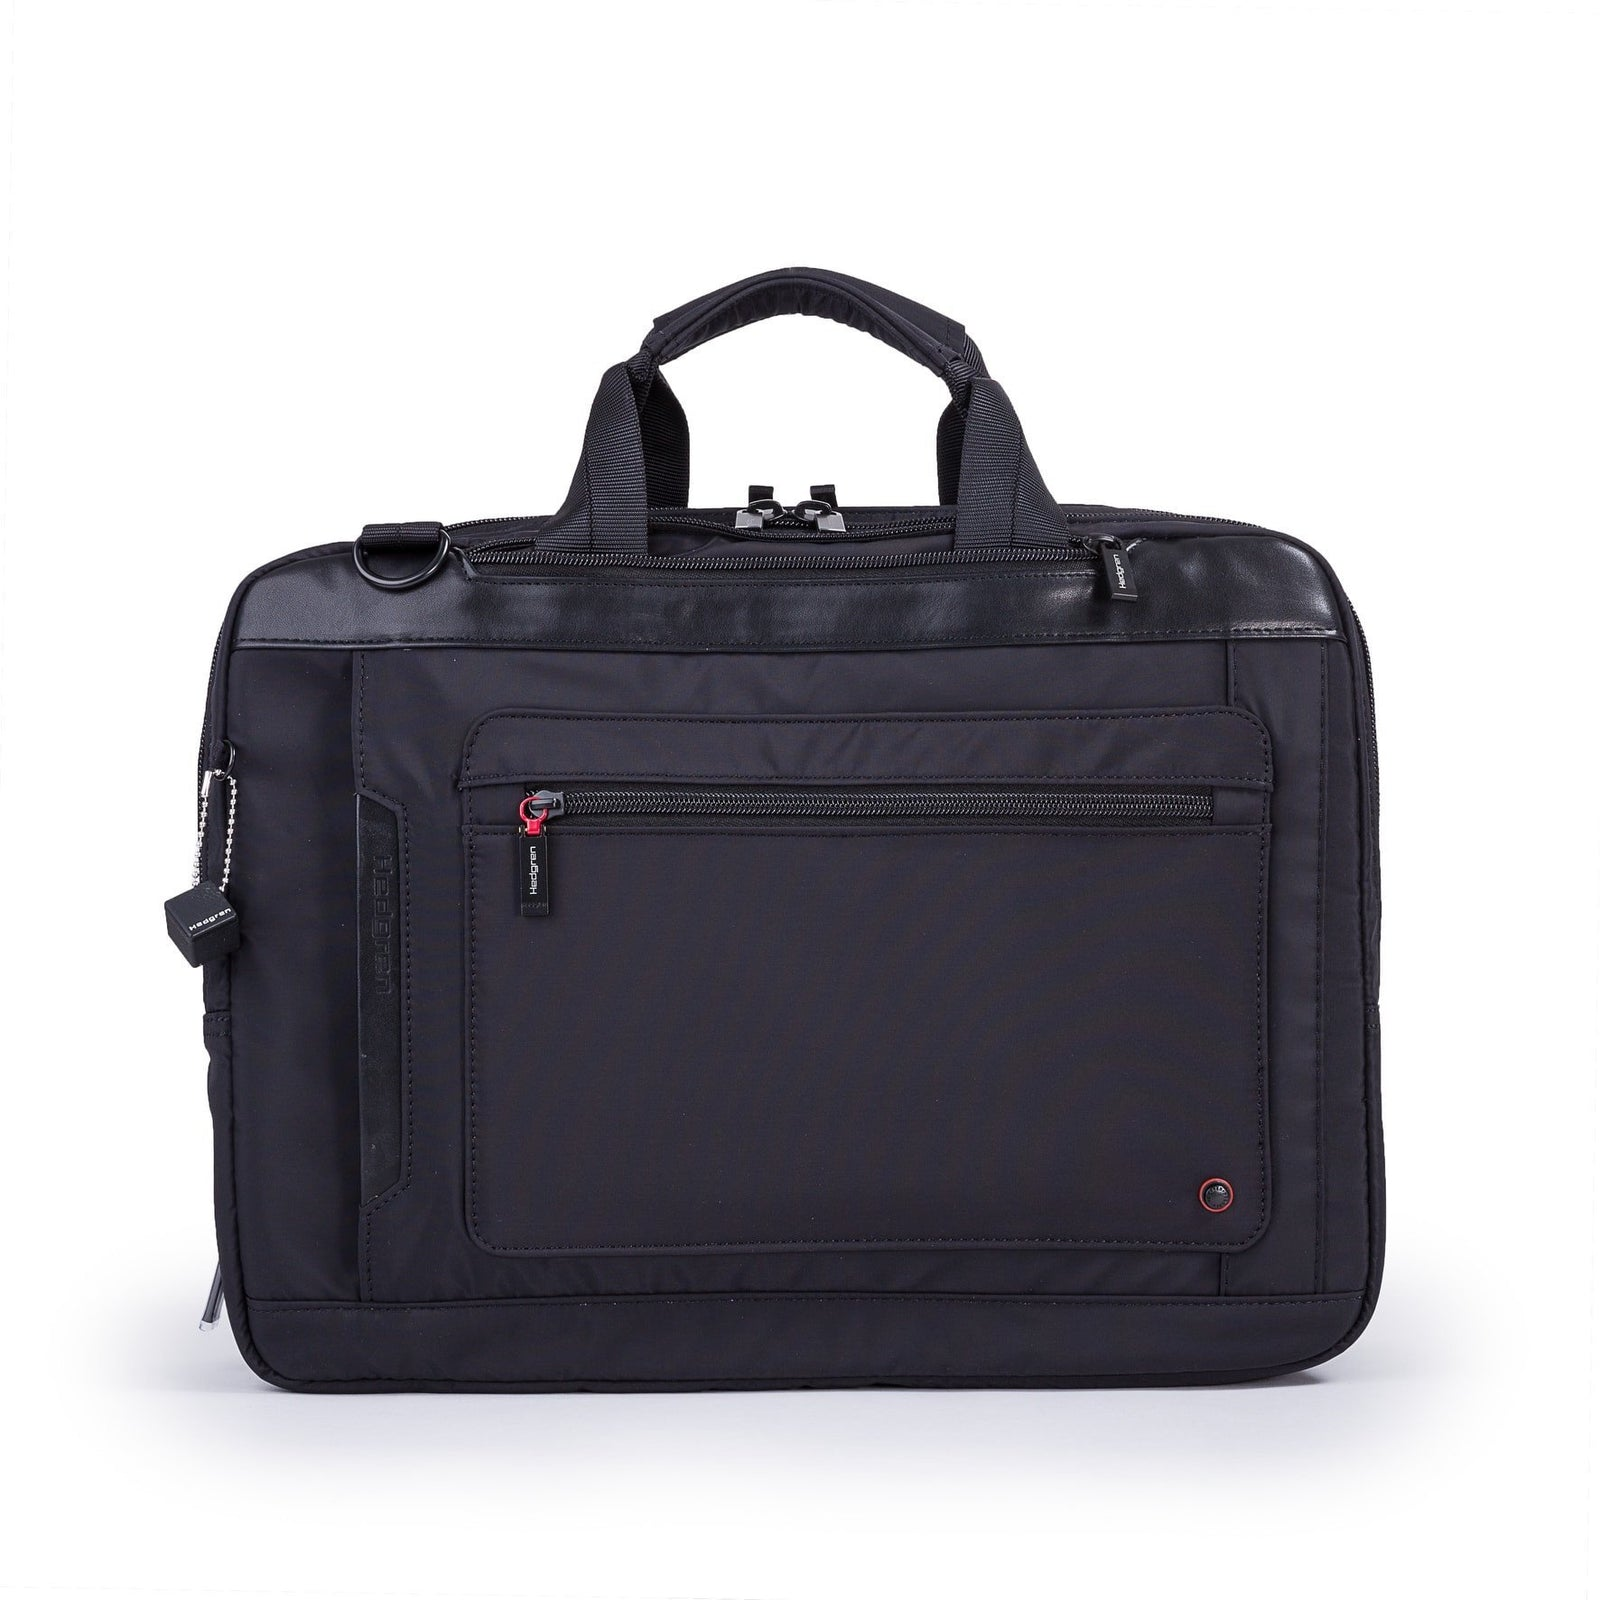 "Hedgren Zeppelin Revised Business Bag 15.6"" EXPLICIT"